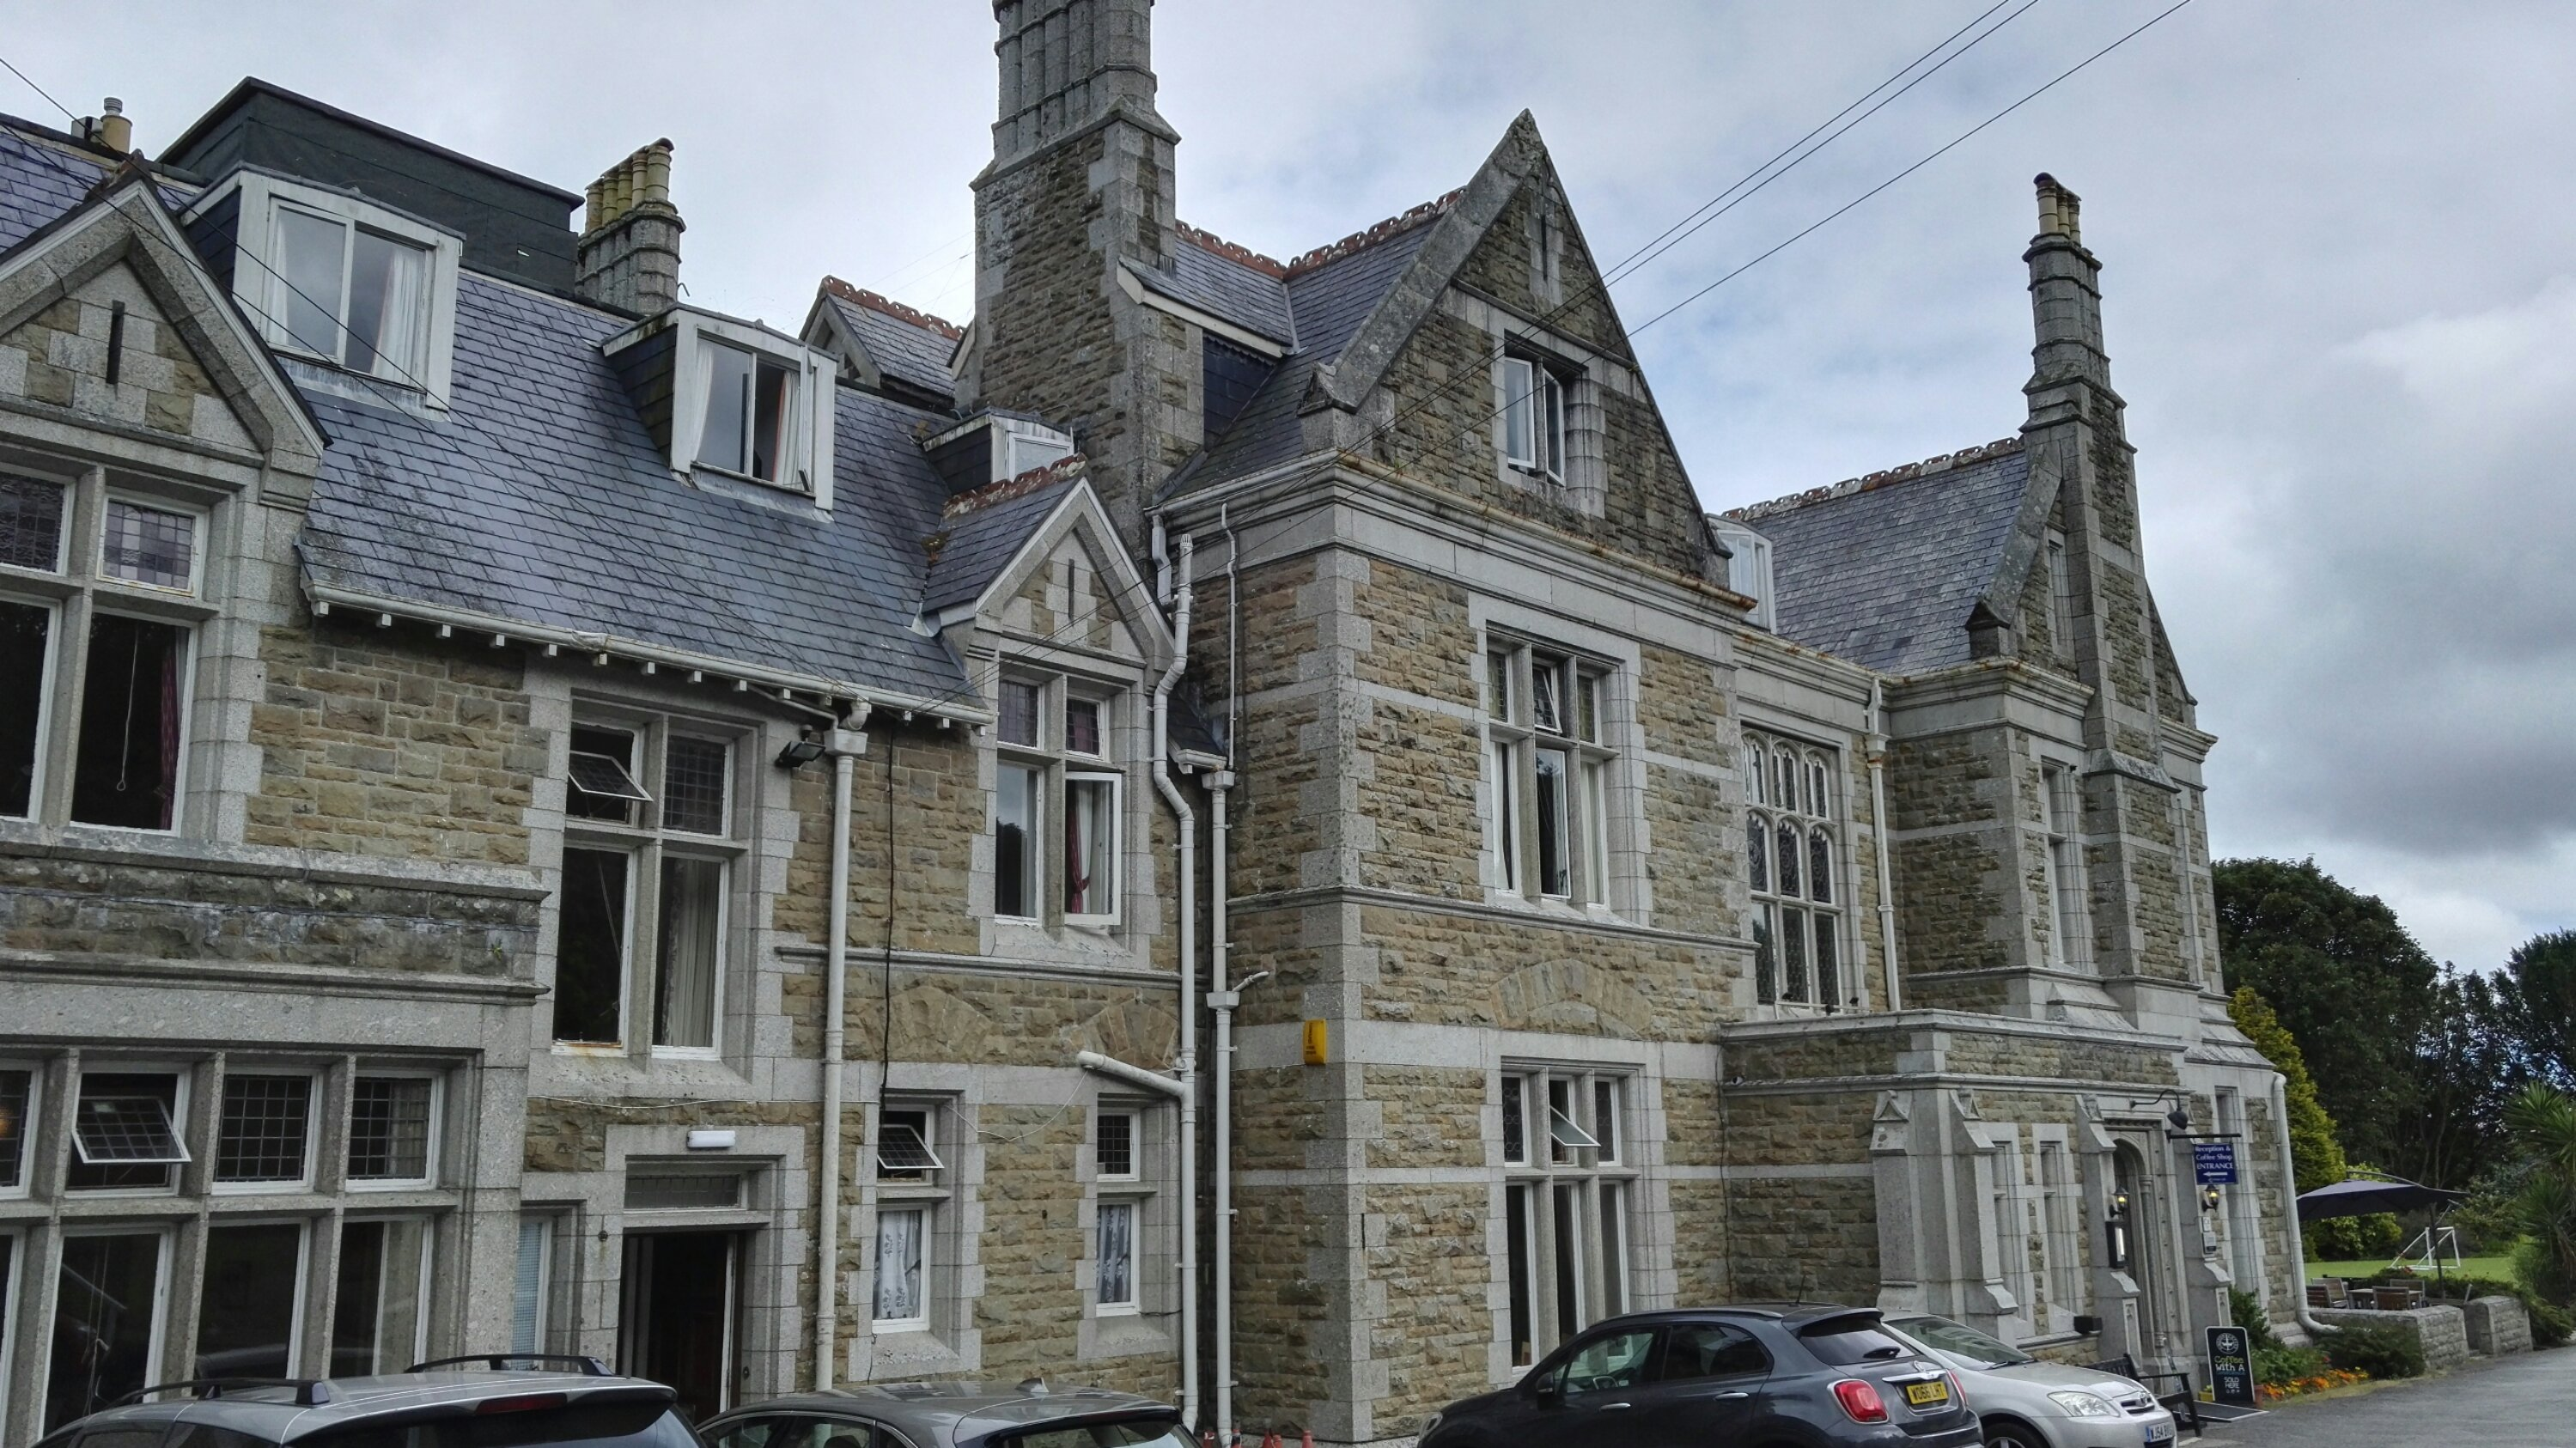 Unser Hotel Treloyhan Manor in St. Ives.